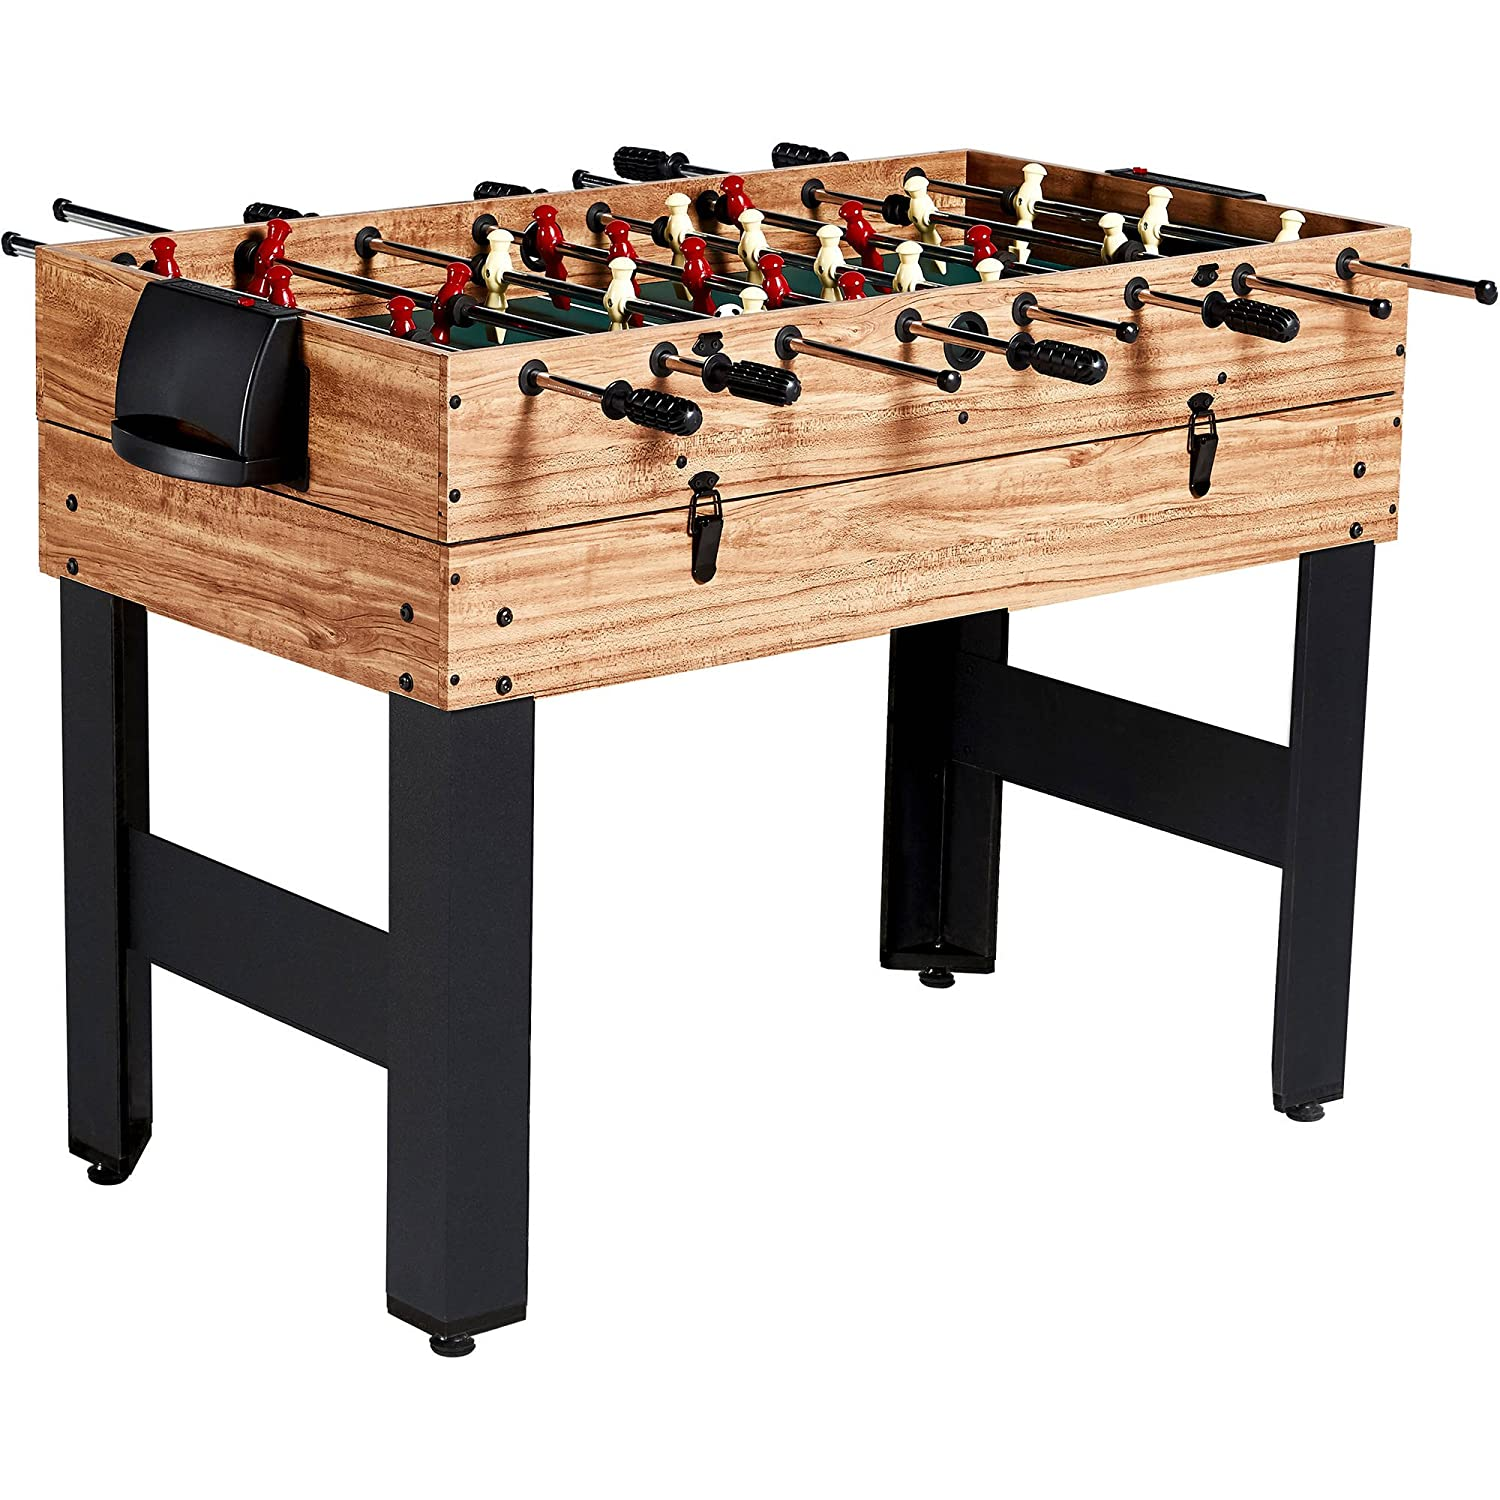 Charmant Amazon.com: Evelove Table Game 3 In 1 Multi Combo Game Table Foosball  Soccer Billiards Pool: Toys U0026 Games